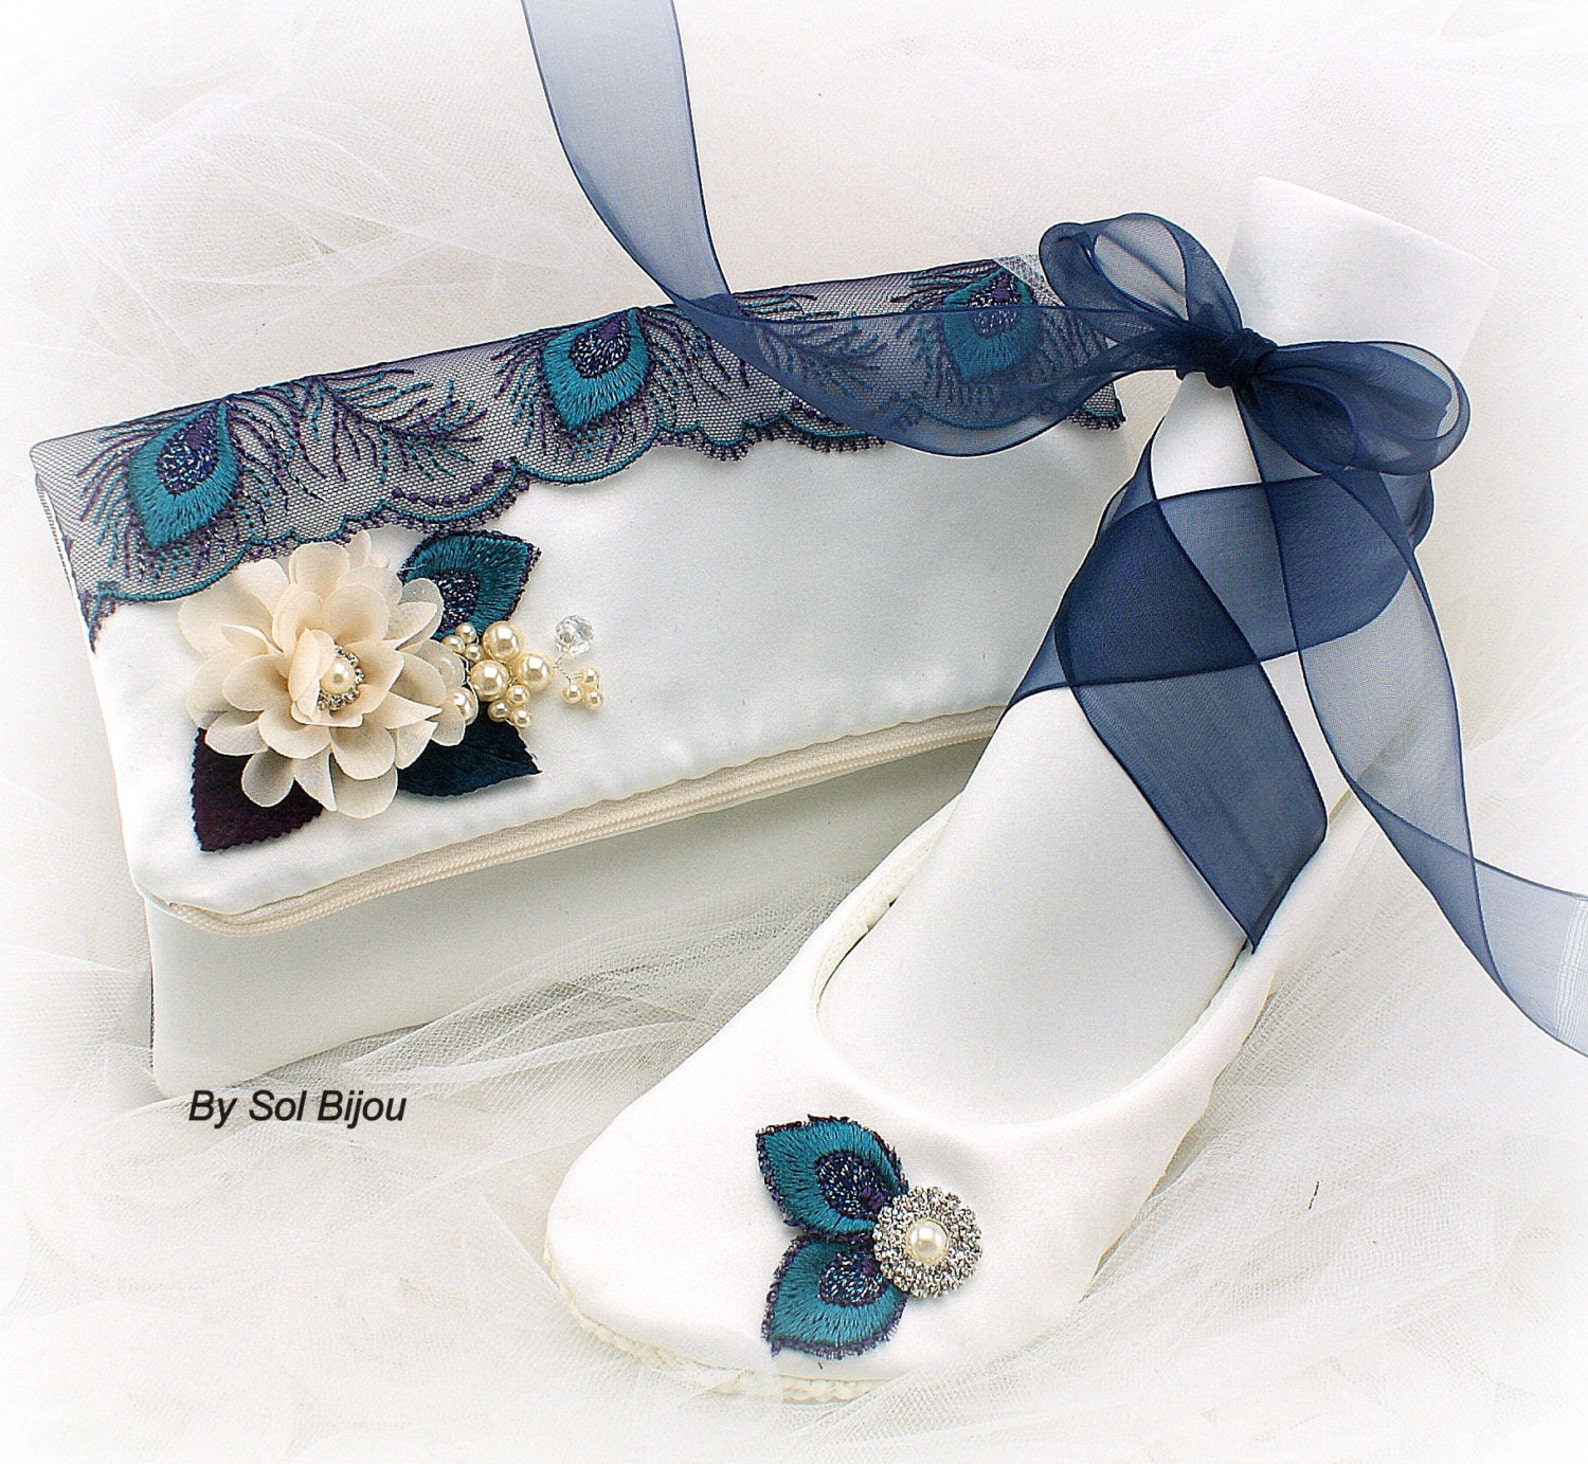 ballet flats, clutch peacock, purple, teal, navy, blue, ivory, handbag, wedding, flats, satin, pearls, crystals, elegant wedding